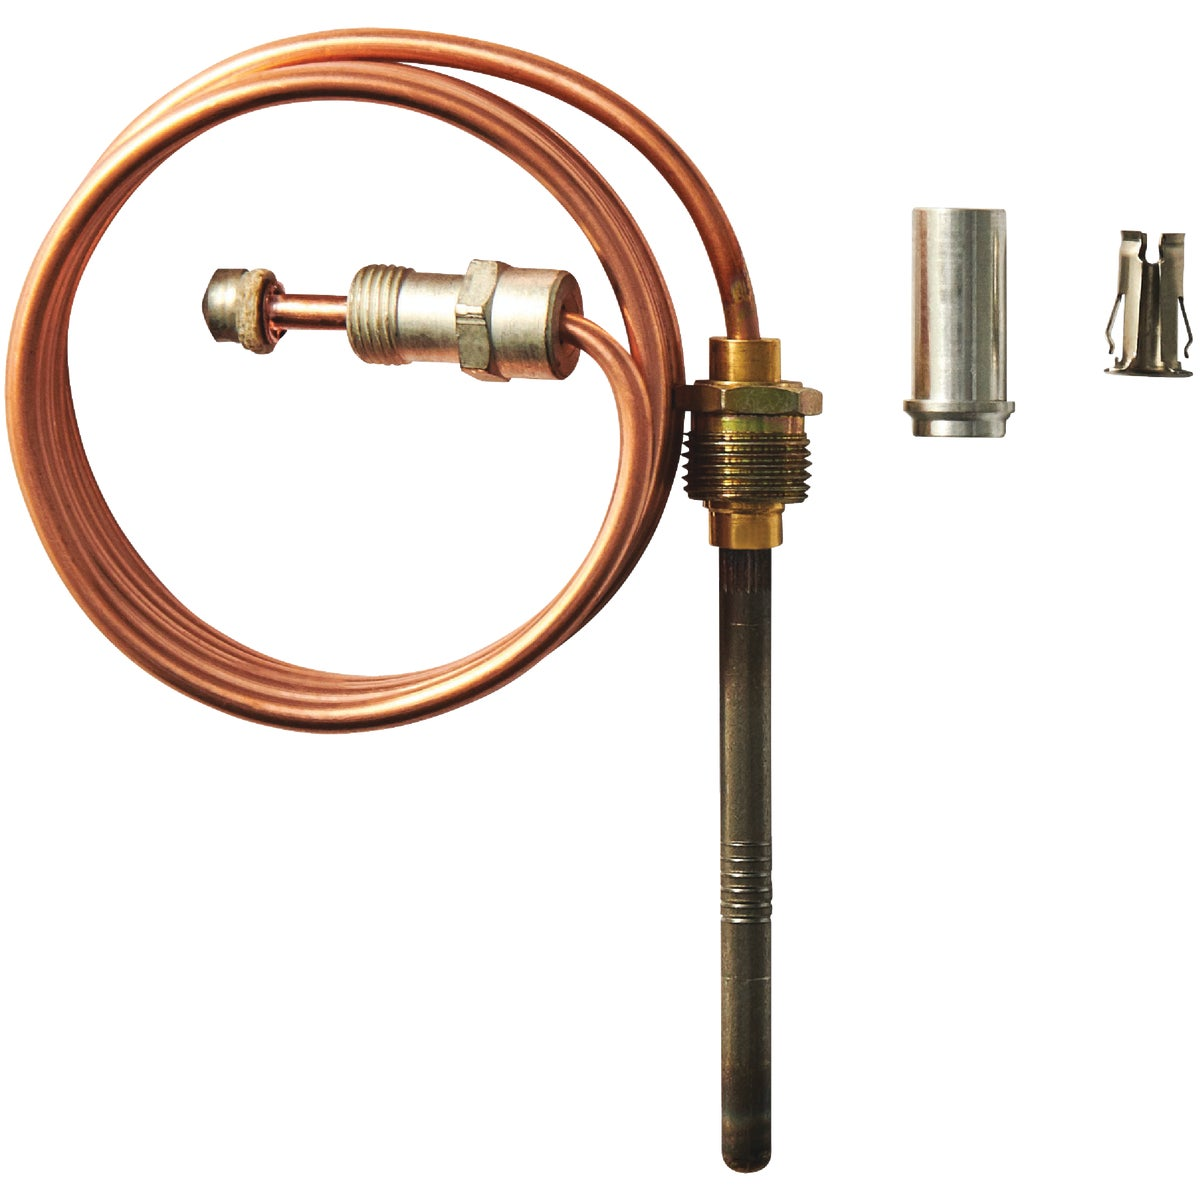 "36"" THERMOCOUPLE - CQ100A1005 by Honeywell Internatl"